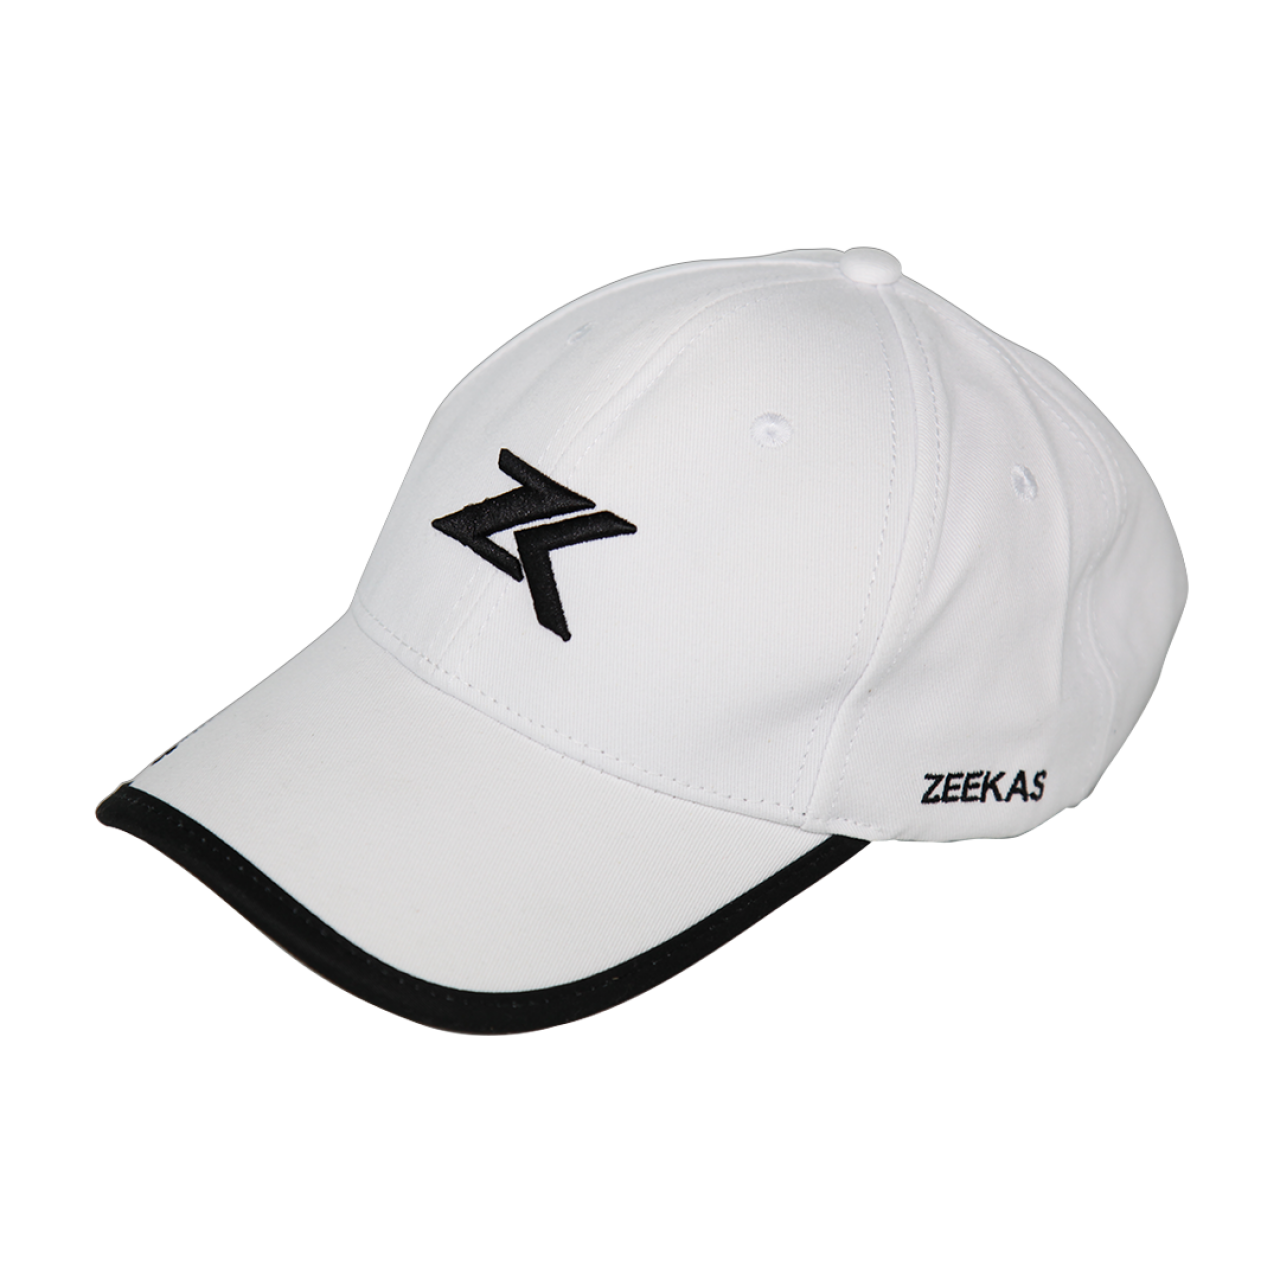 Zeekas ZK White Baseball Cap with Brand Embroidery Hat For Men and Women